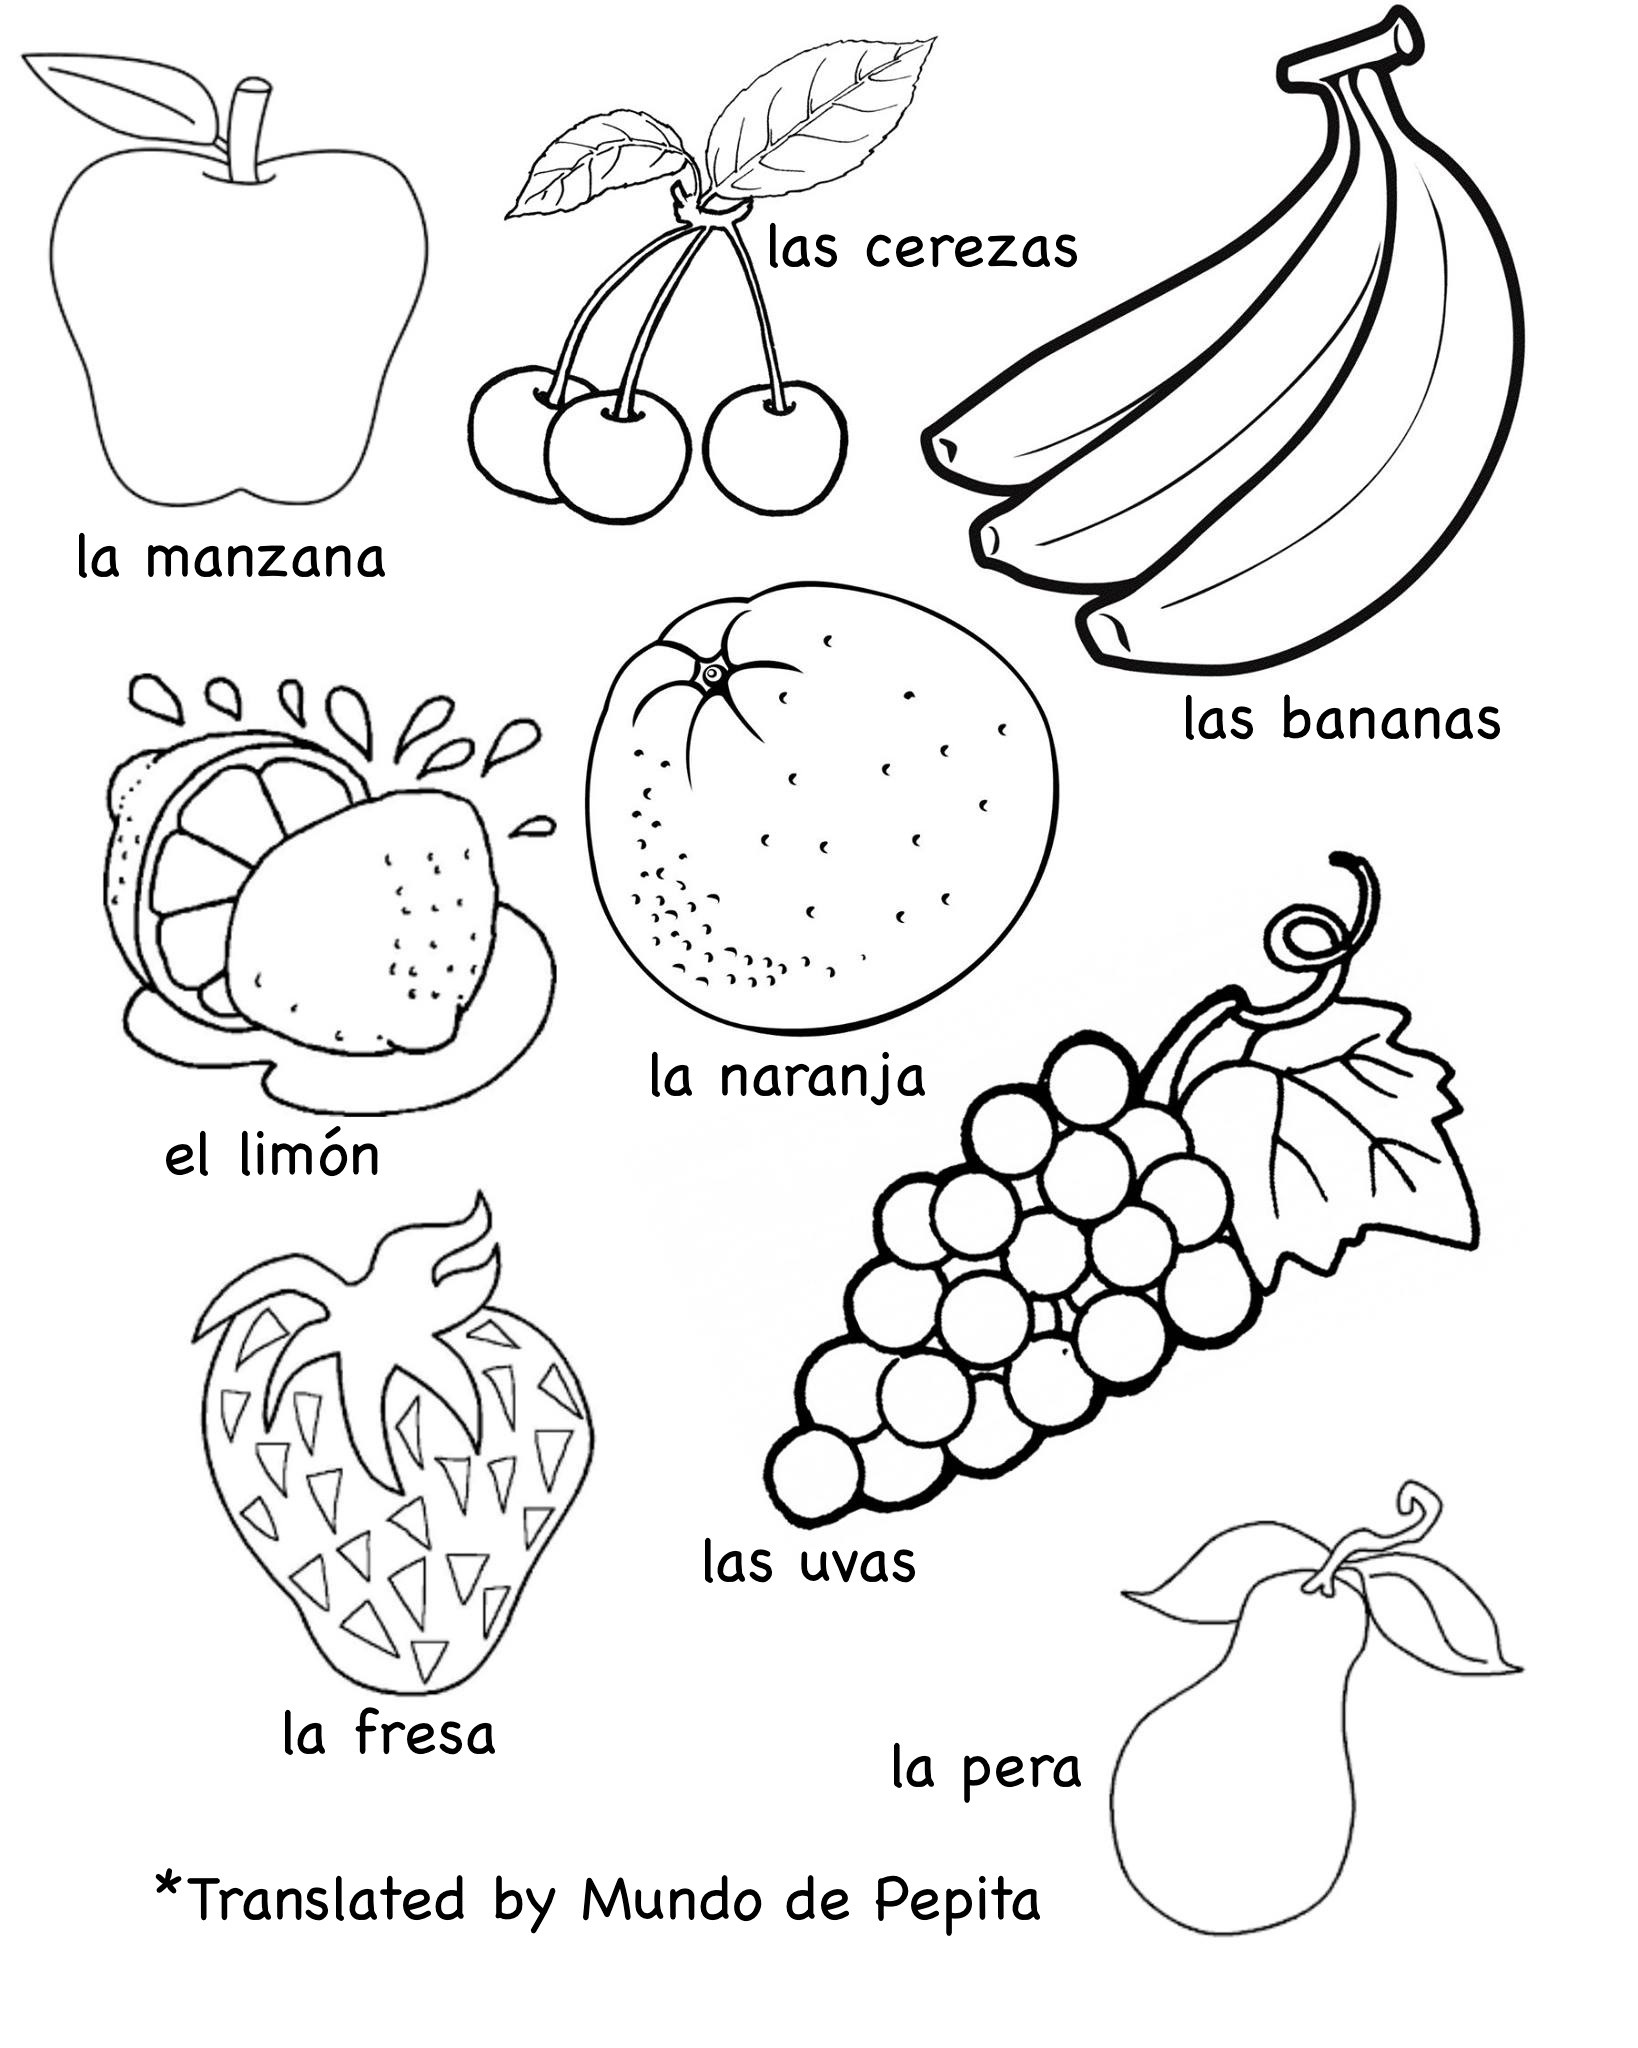 Preschool Fruits and Vegetables Worksheets Coloring Book Multilingual Printablesits and Ve Ables In